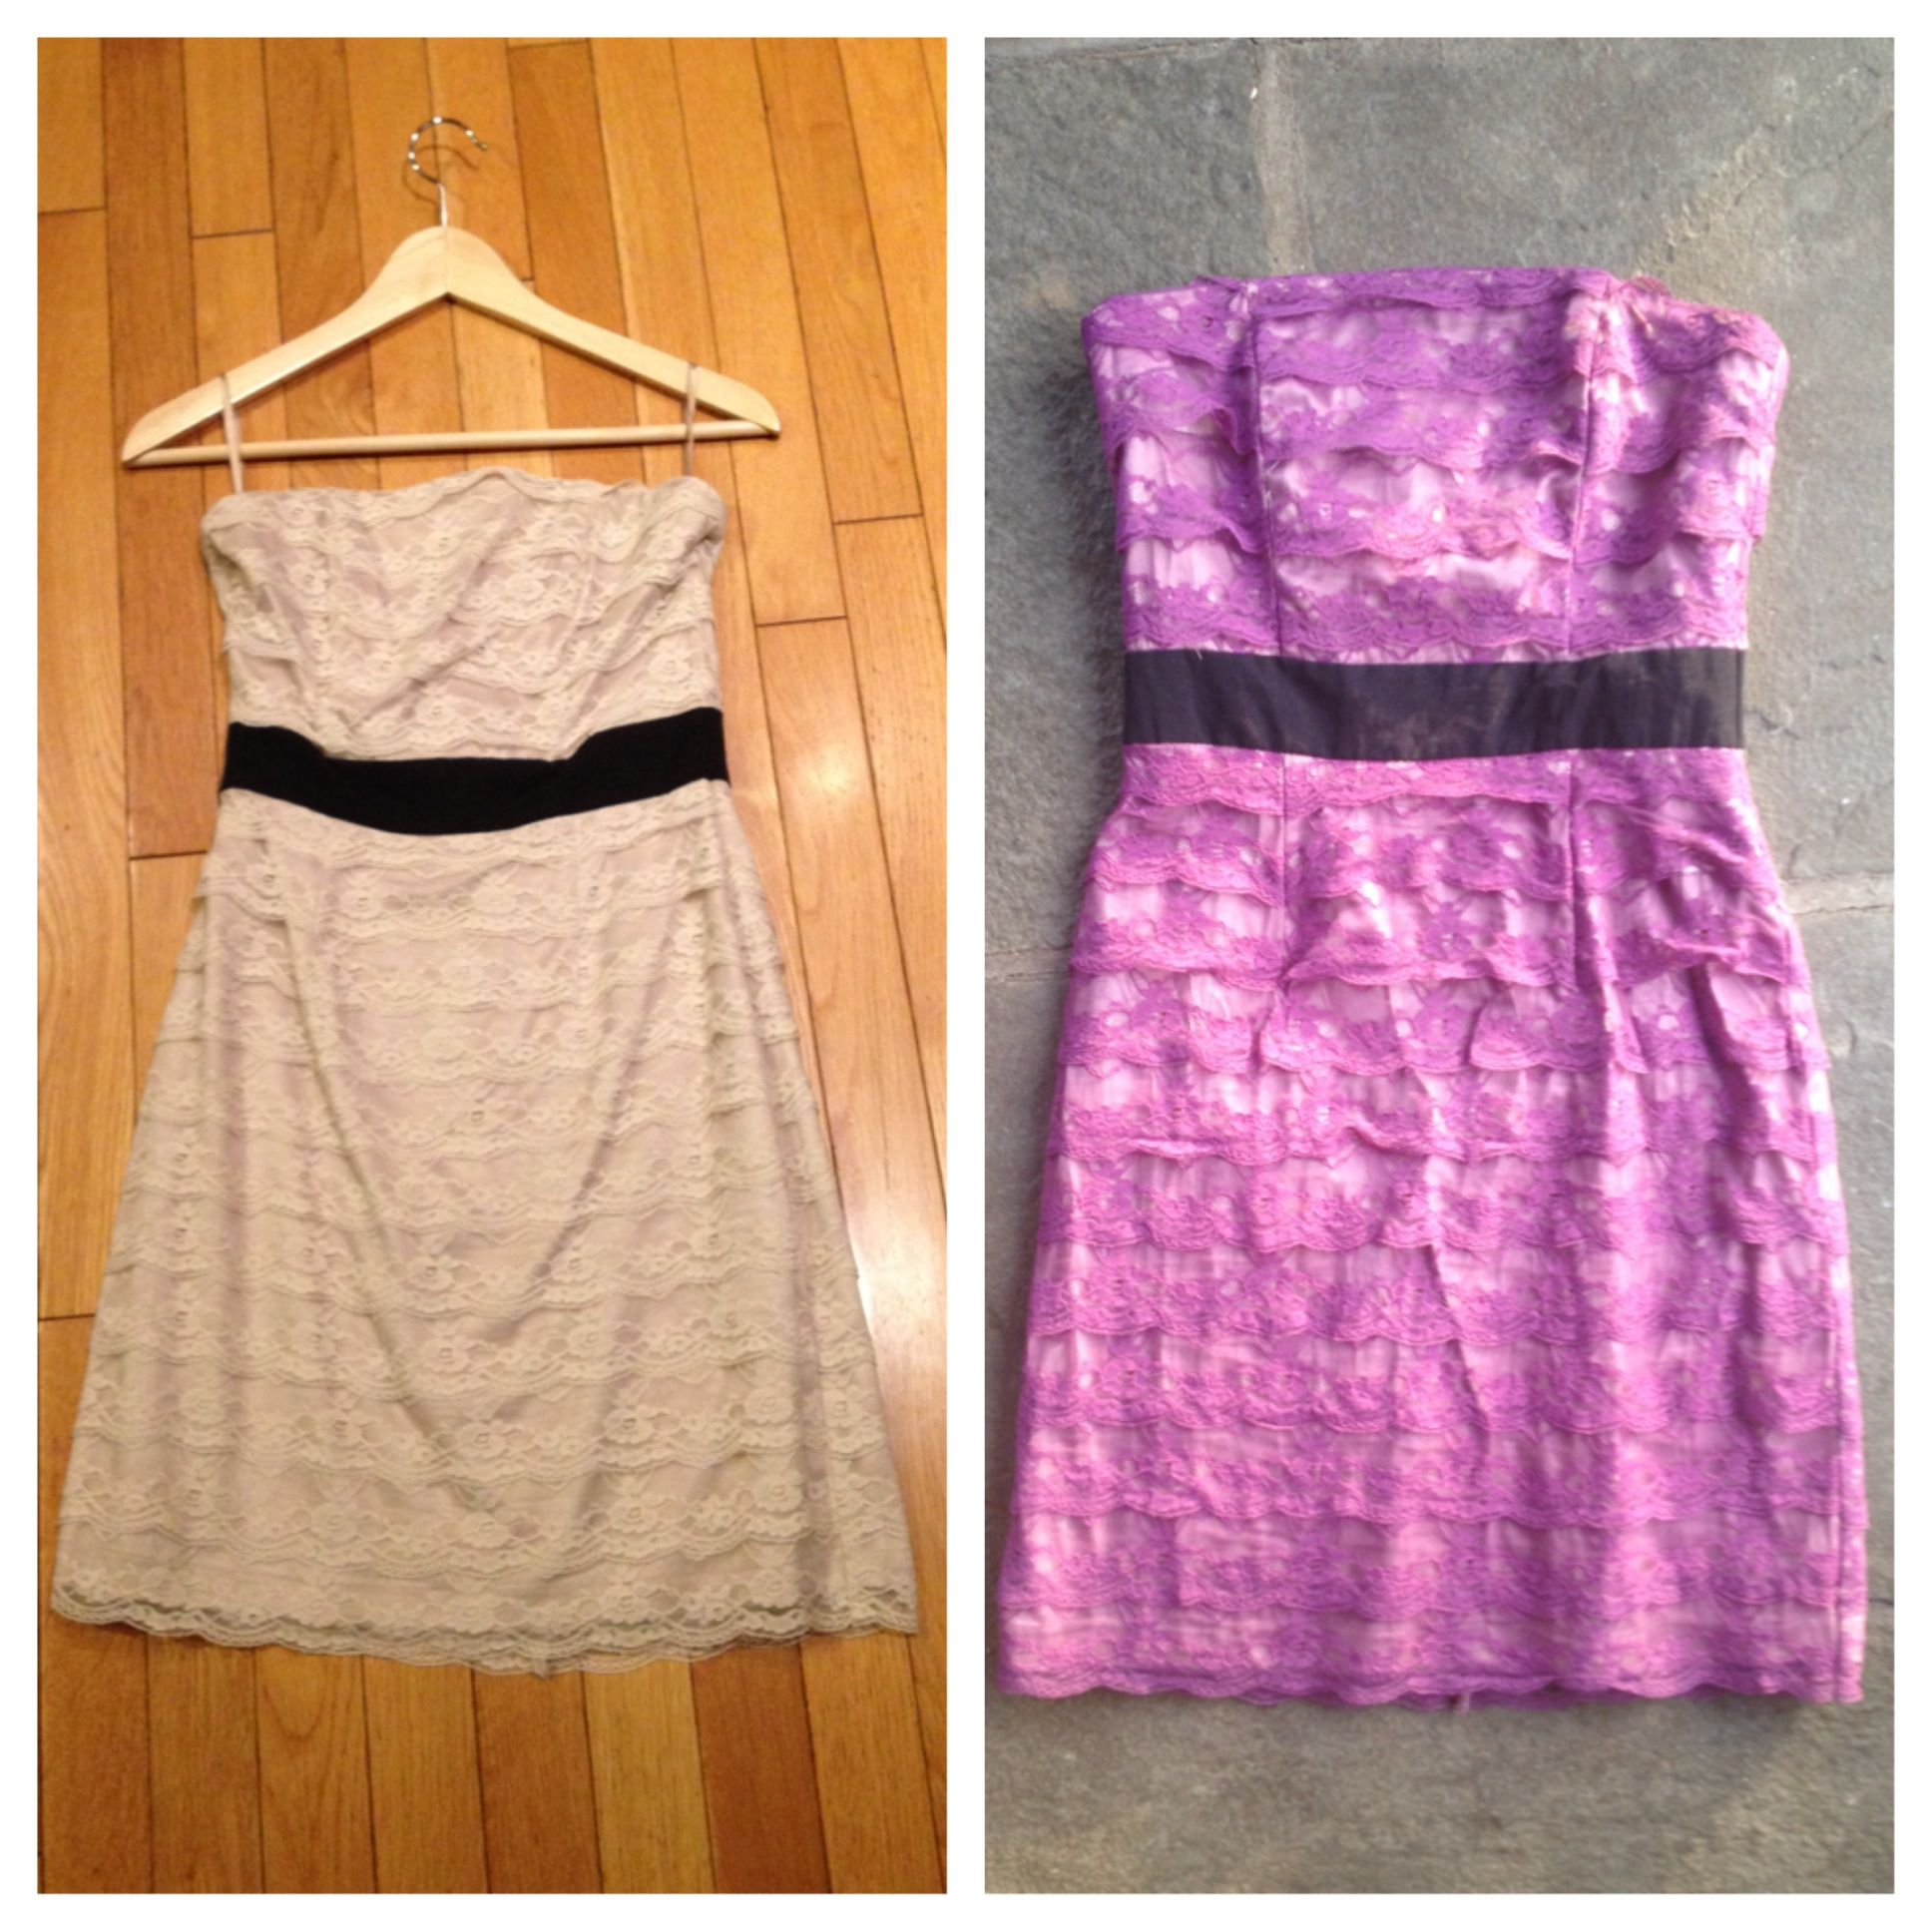 Great Before And After Custom Rit Dyed Dress. Tutorial By